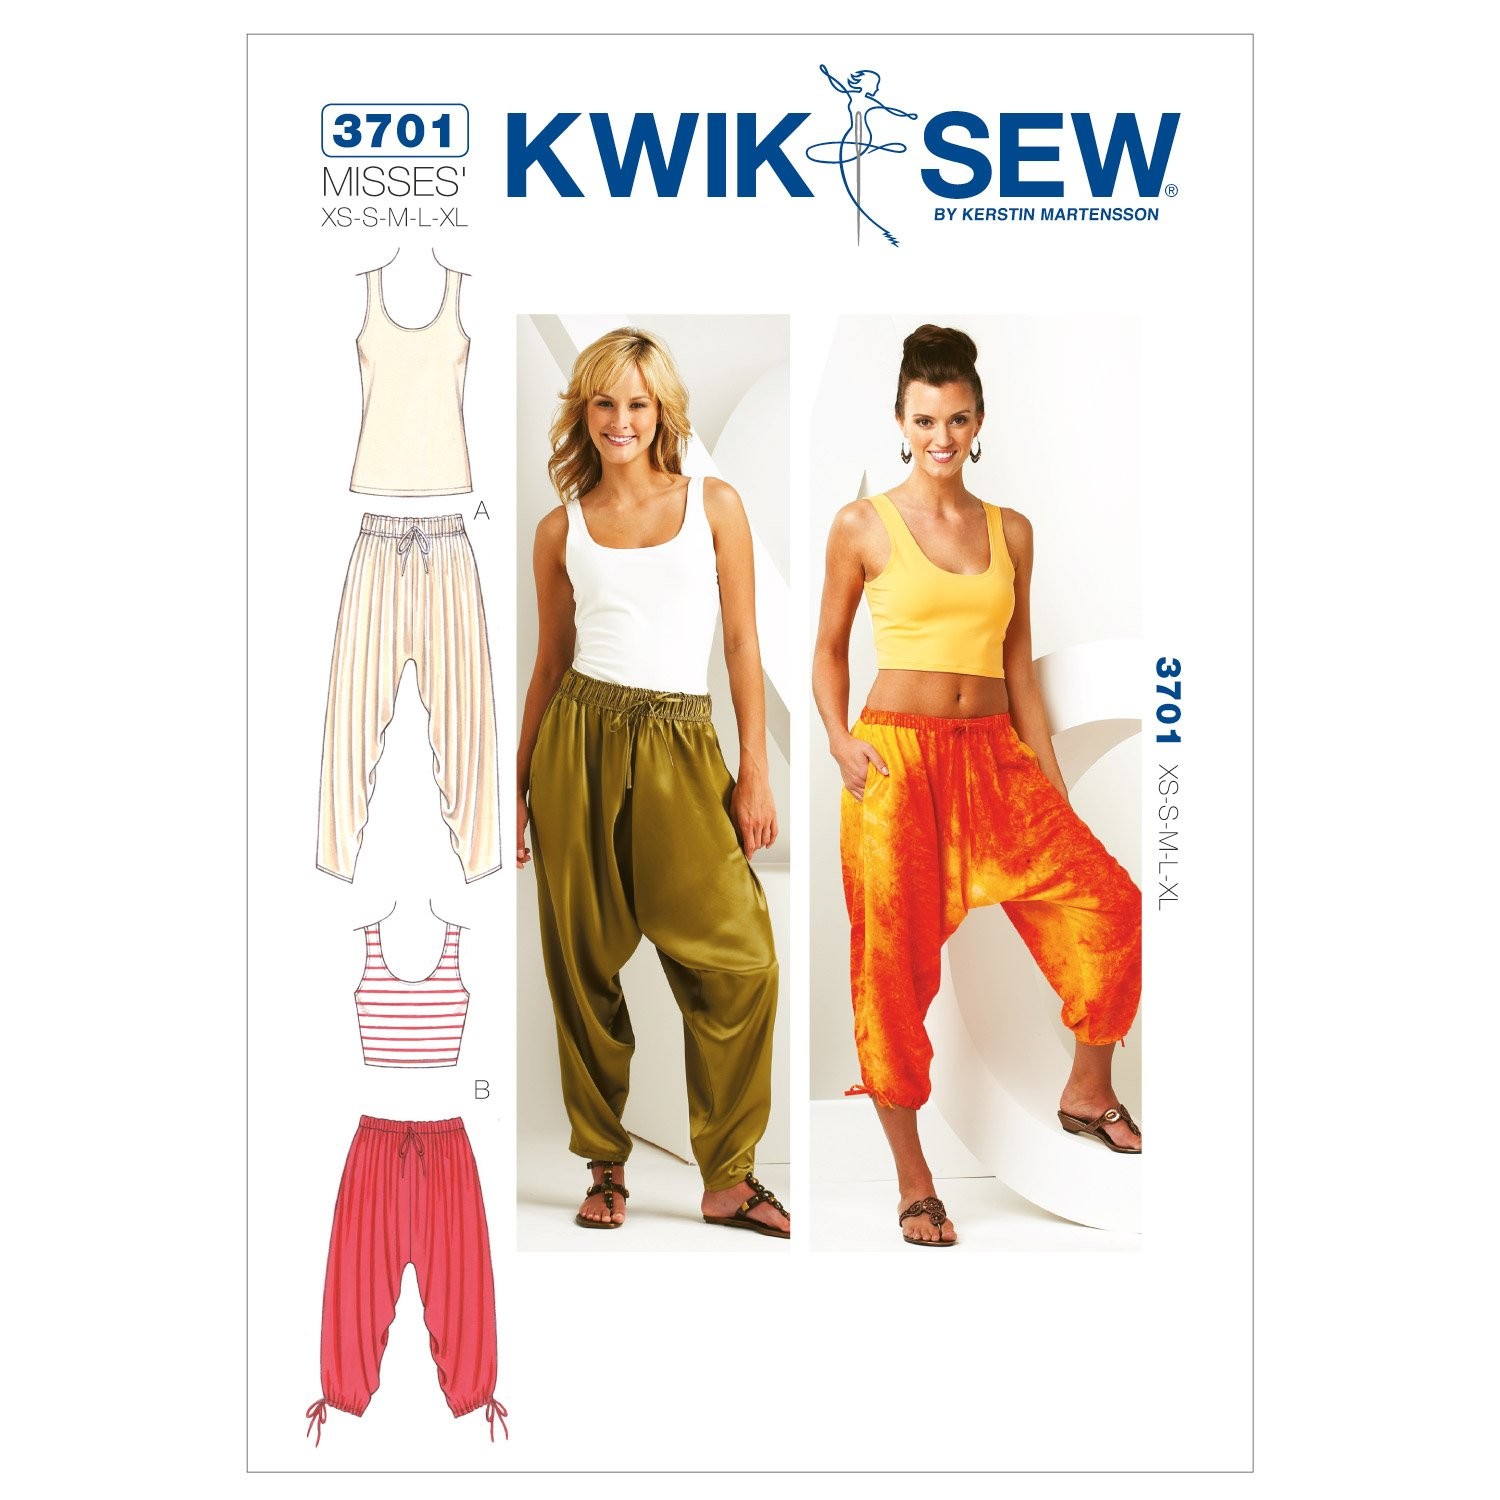 Amazon.com: Kwik Sew K3701 Pants and Tops Sewing Pattern, Size XS ...